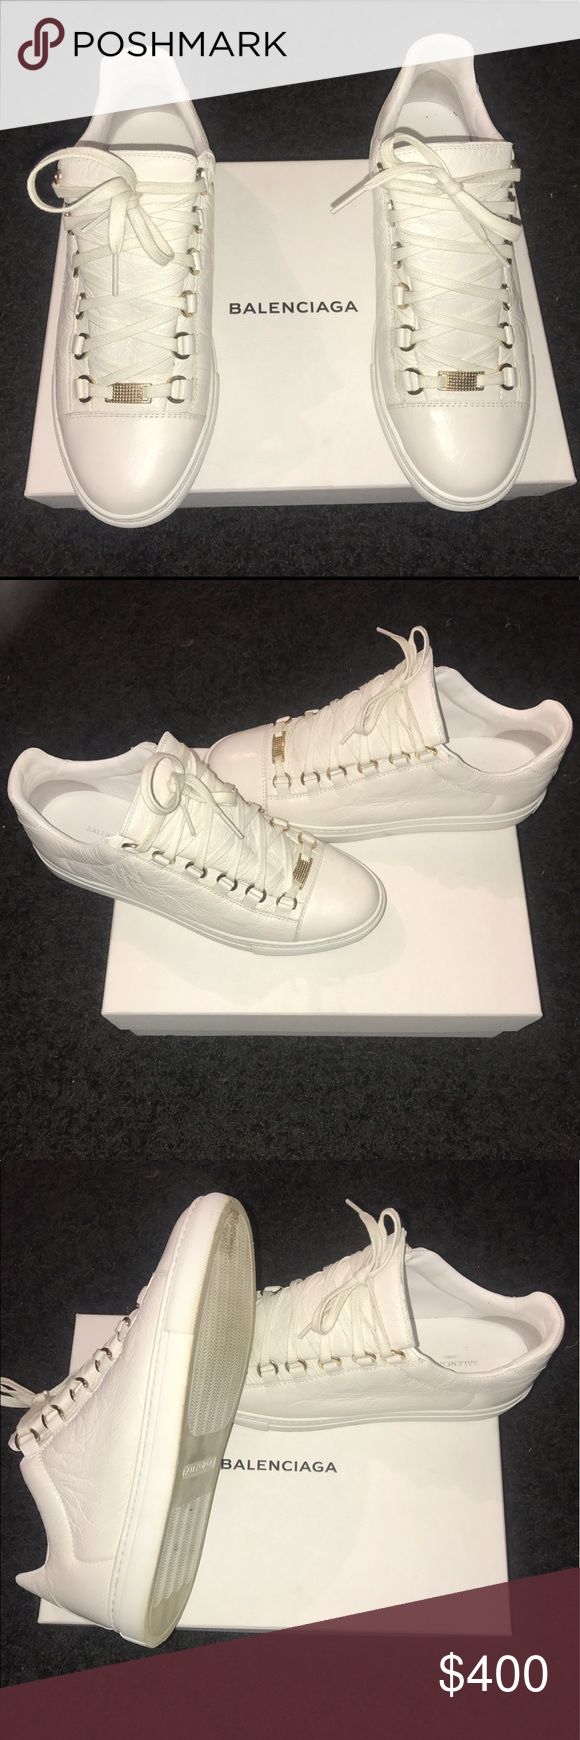 100% Authentic  Balenciaga Low Top Arena Sneakers All White with Gold Detail, Balenciaga Arena Low Top sneakers. Worn only 3X Balenciaga Shoes Sneakers